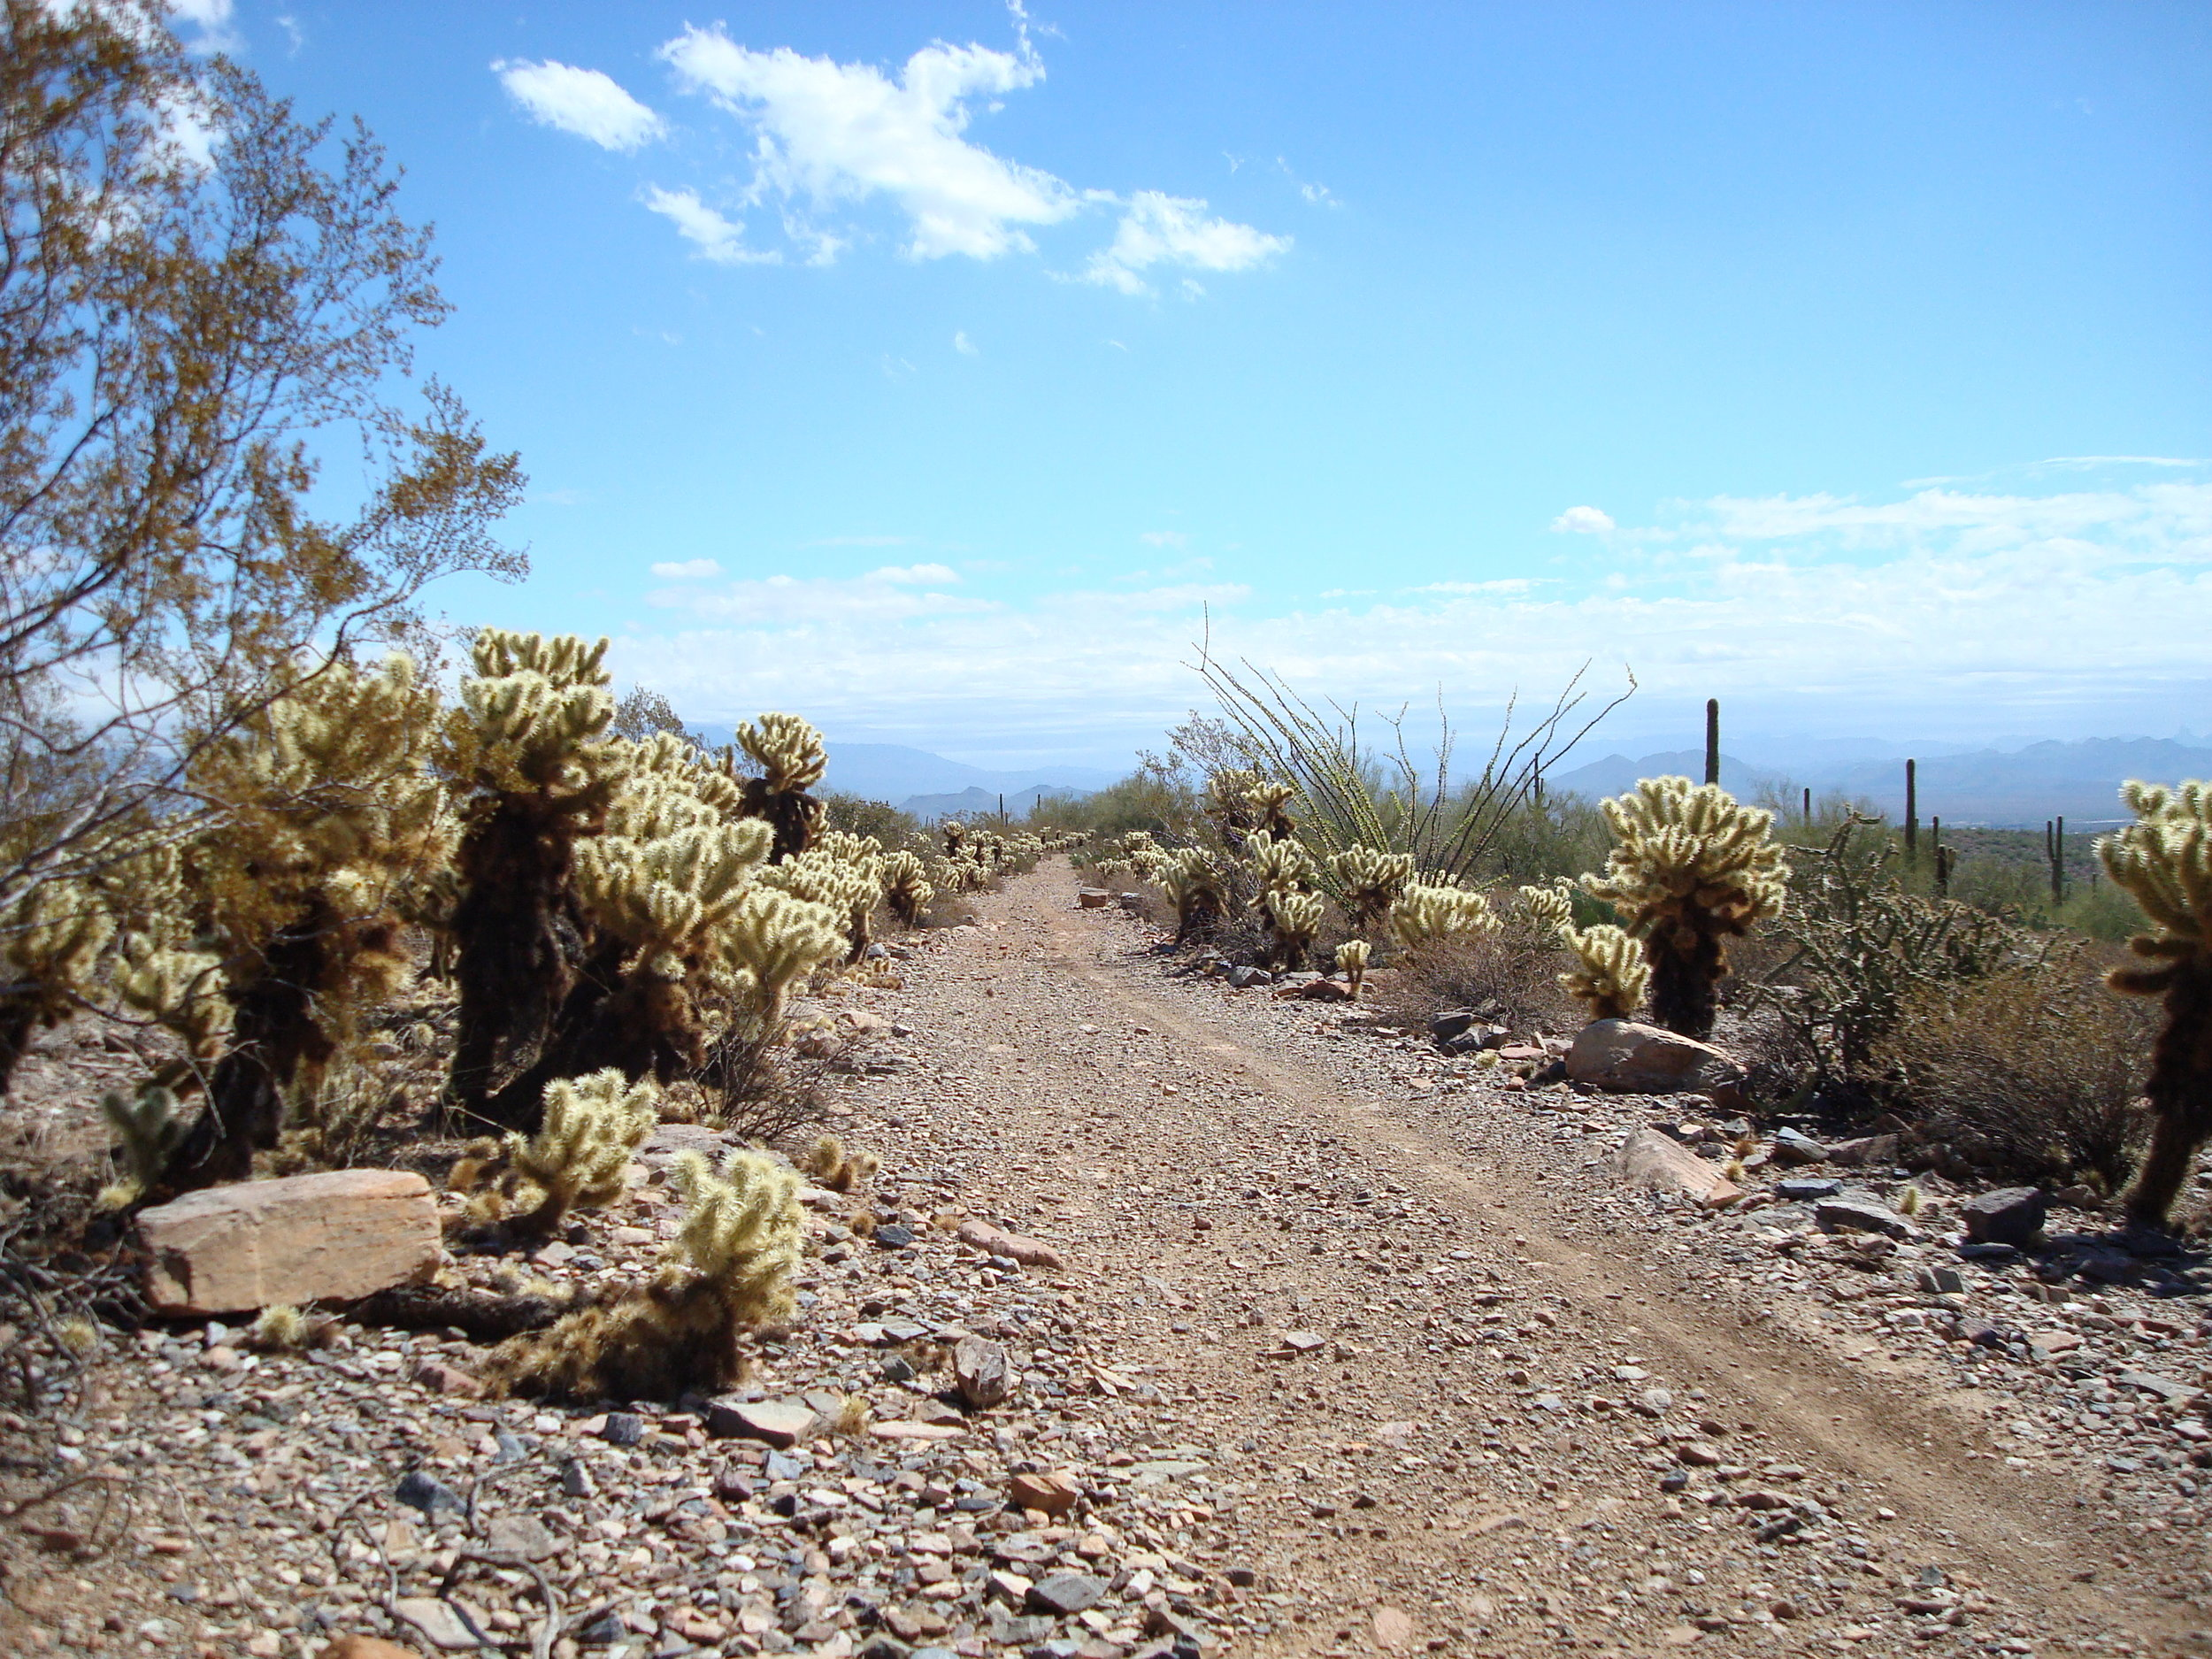 A natural alley forms through jumping cholla cactus.